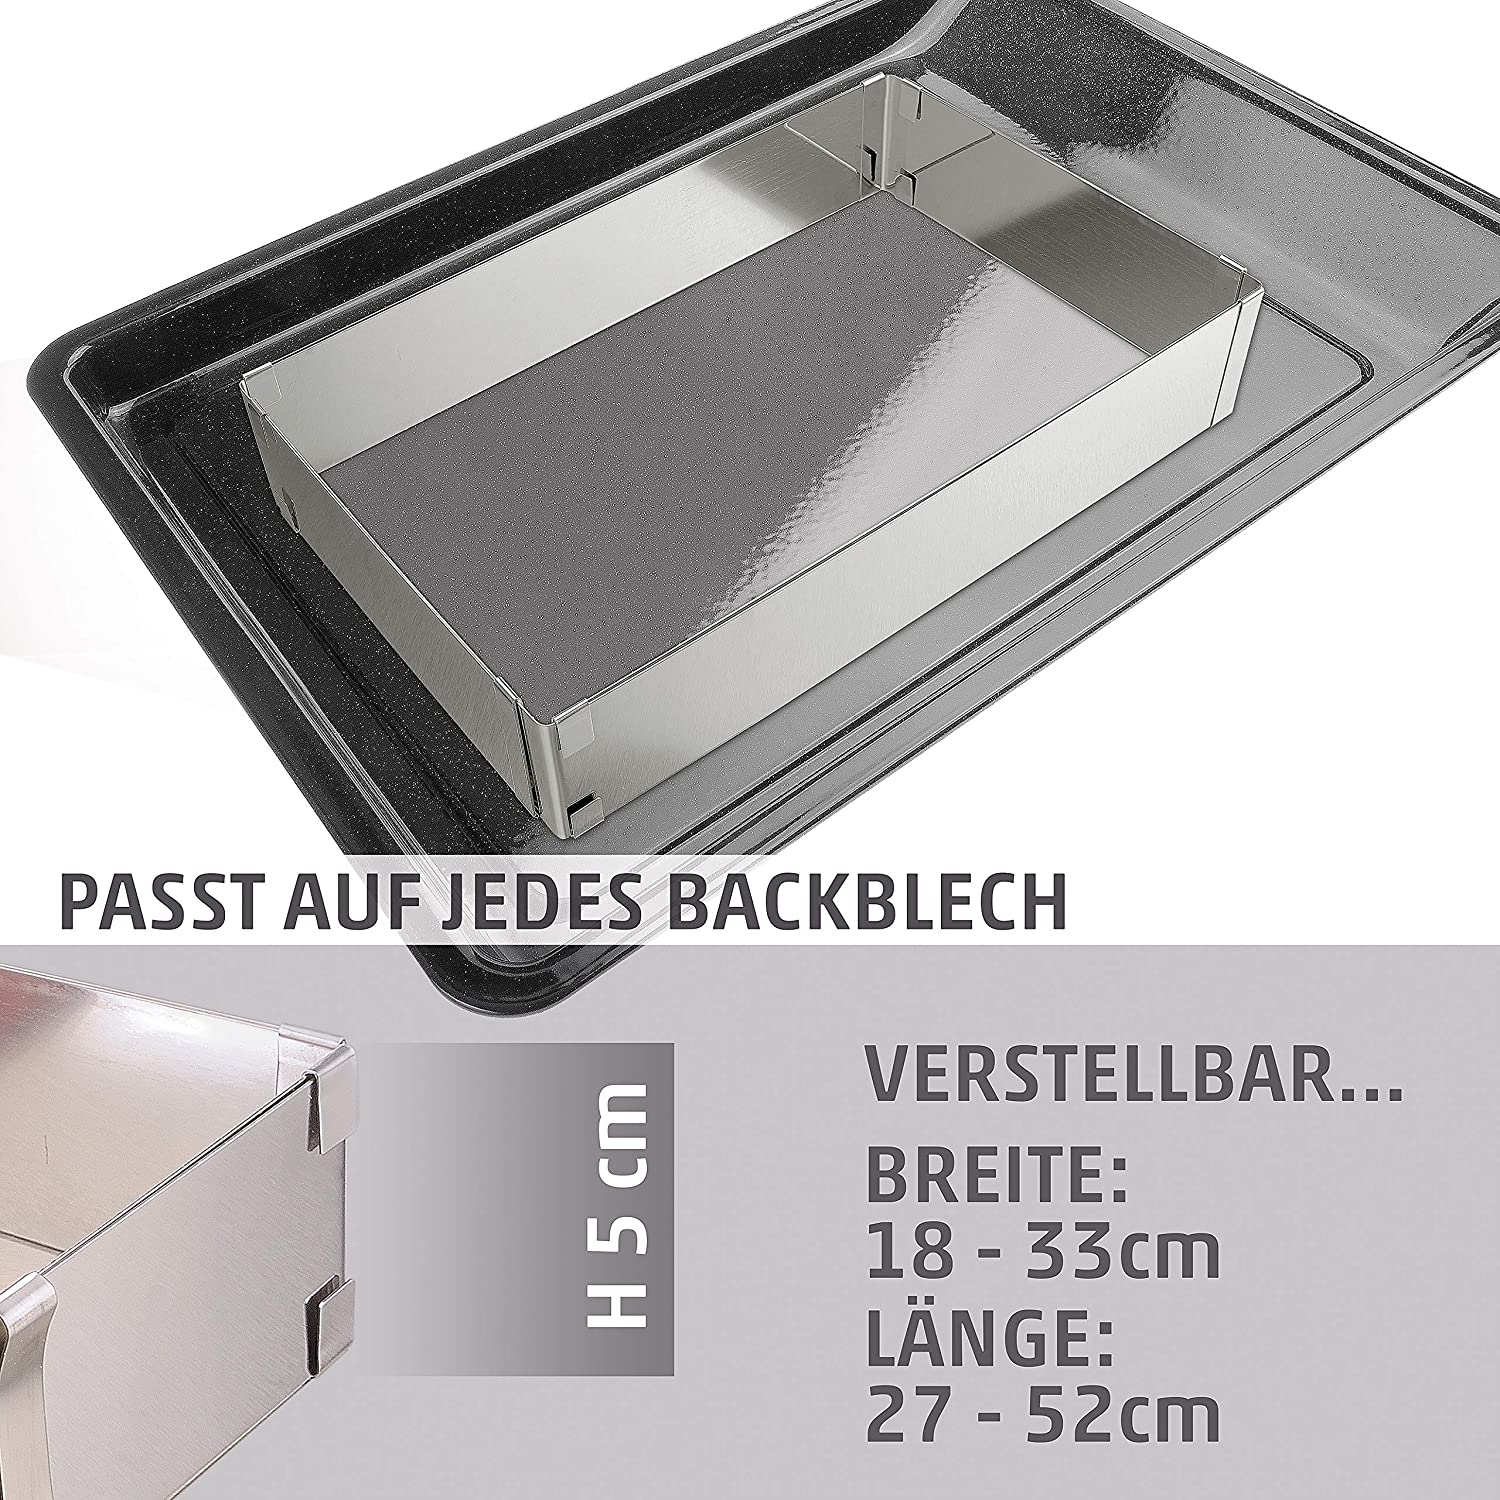 Menz Baking Tray with No / One / Two Separators / 5 cm Tall / Stainless Steel without divider